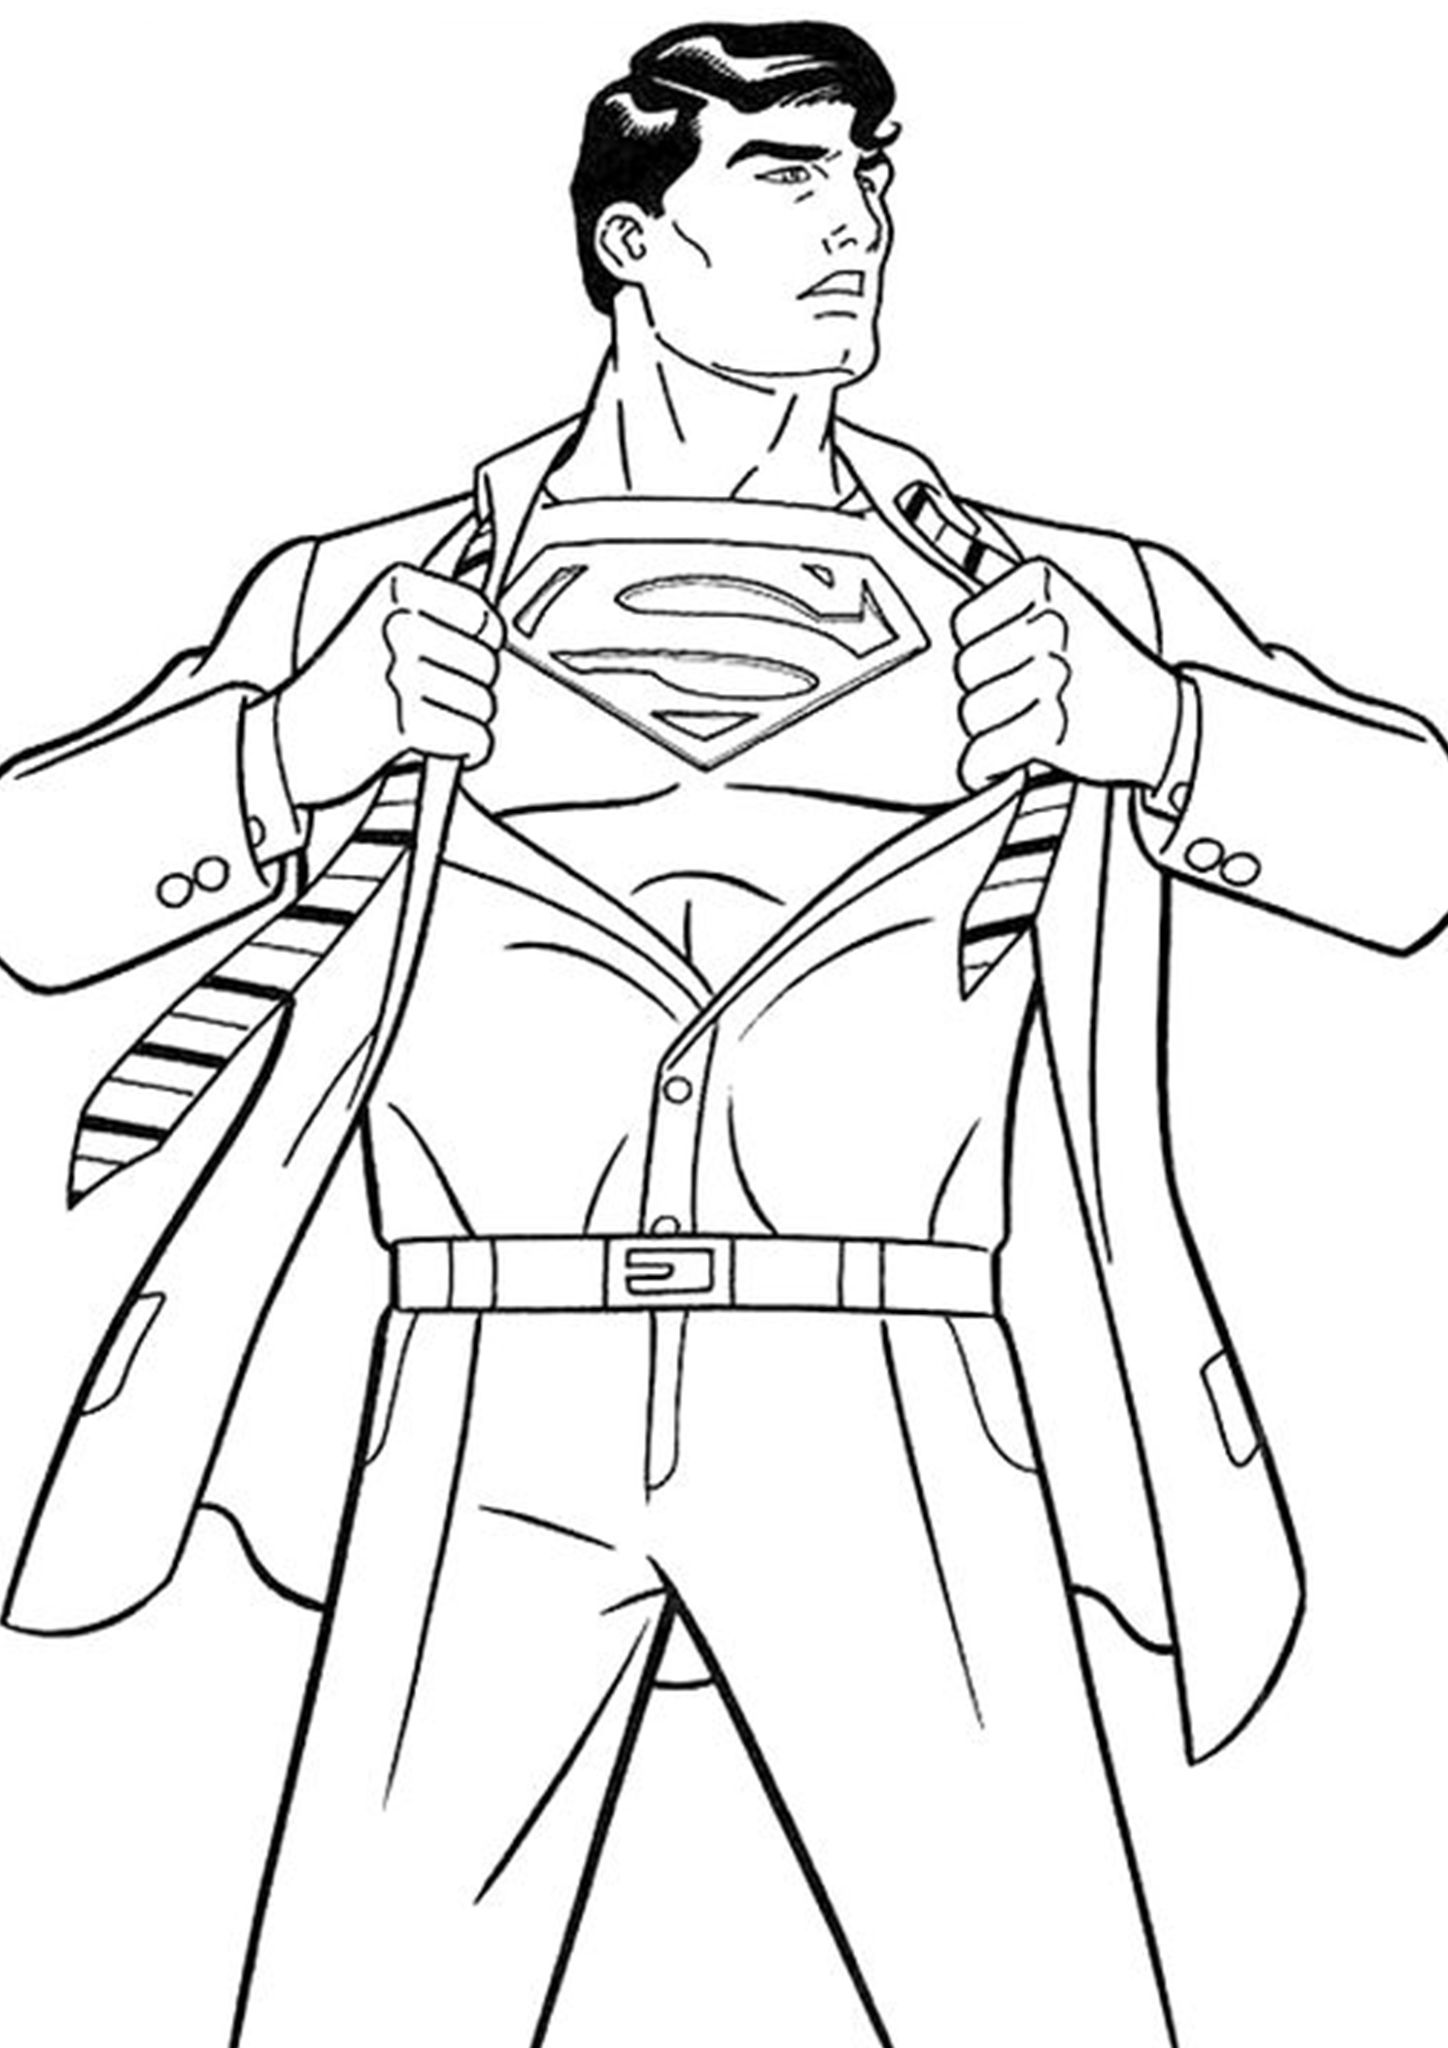 Free Easy To Print Superman Coloring Pages Superman Coloring Pages Avengers Coloring Pages Superhero Coloring Pages